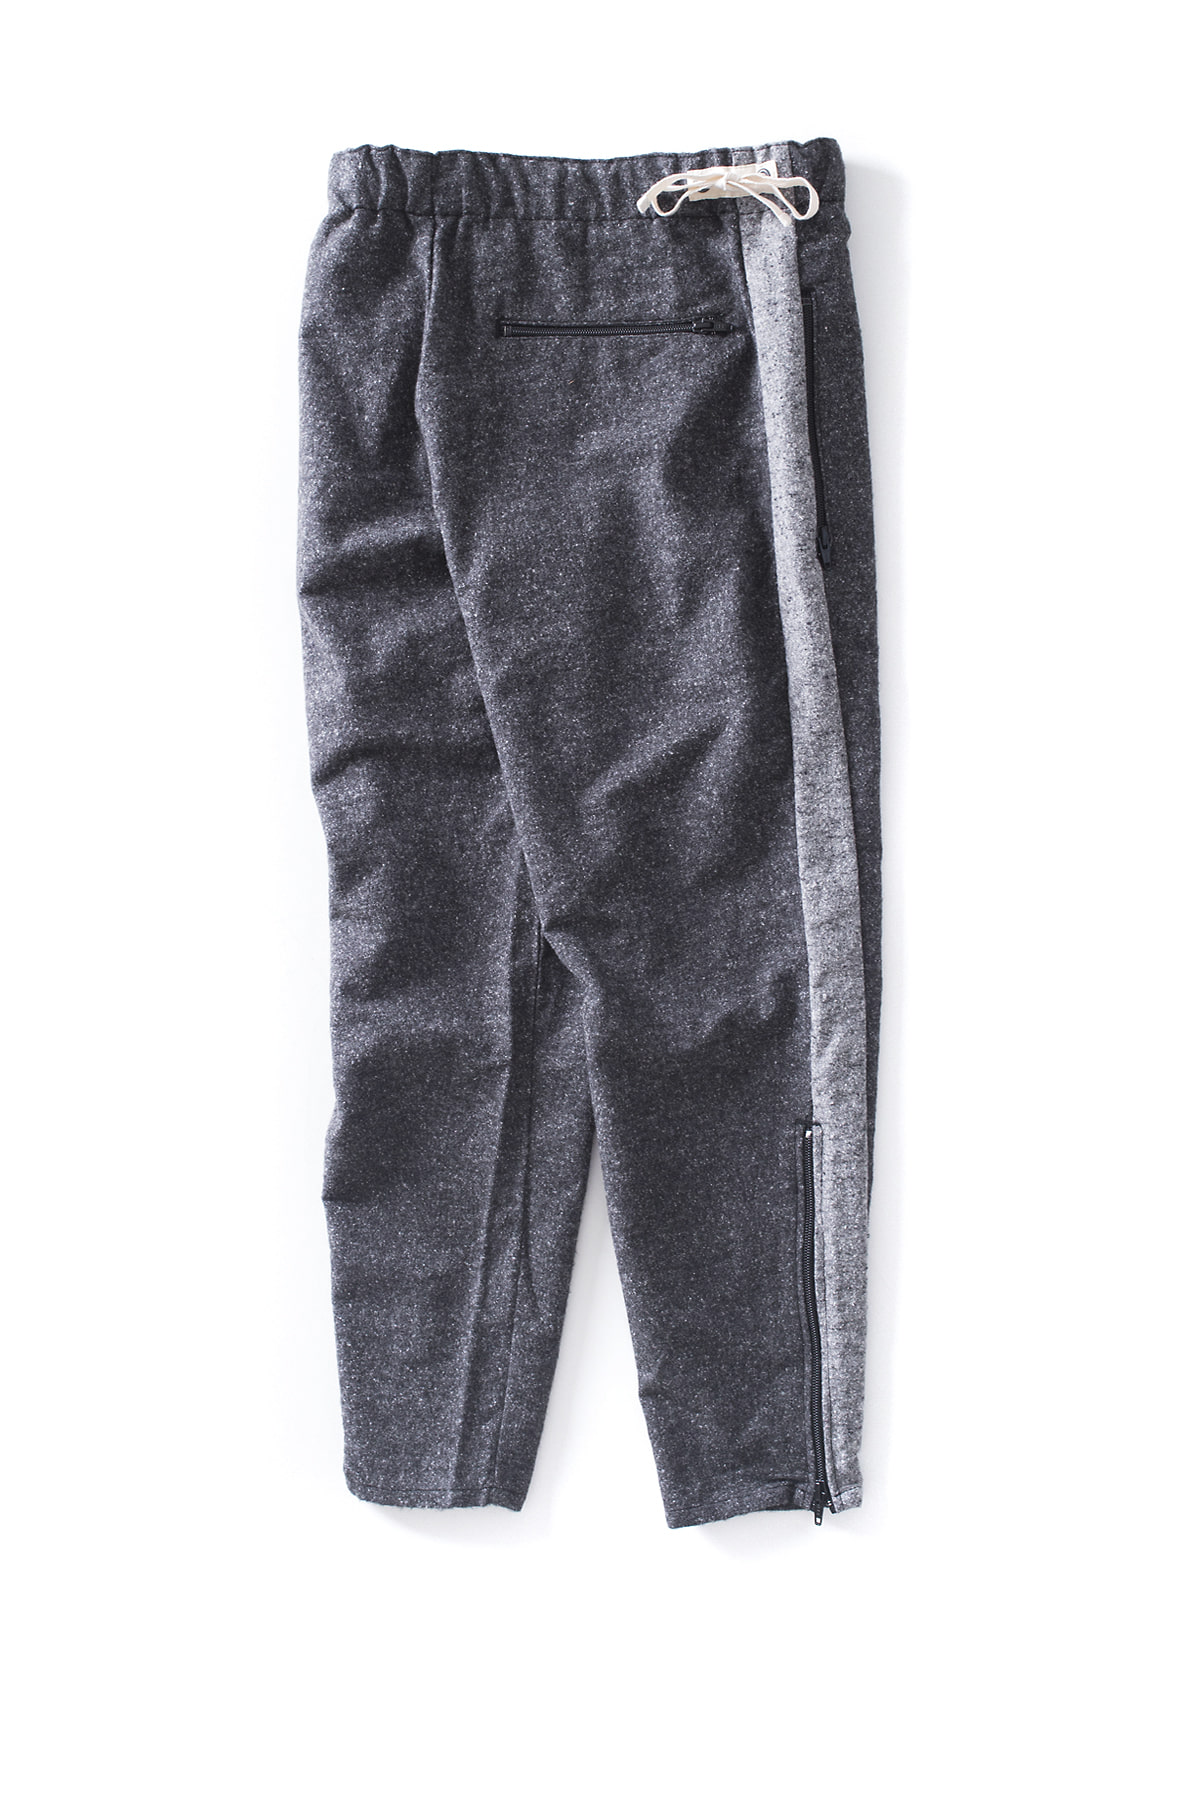 Kenneth Field : Woven Trouser (Charcoal)